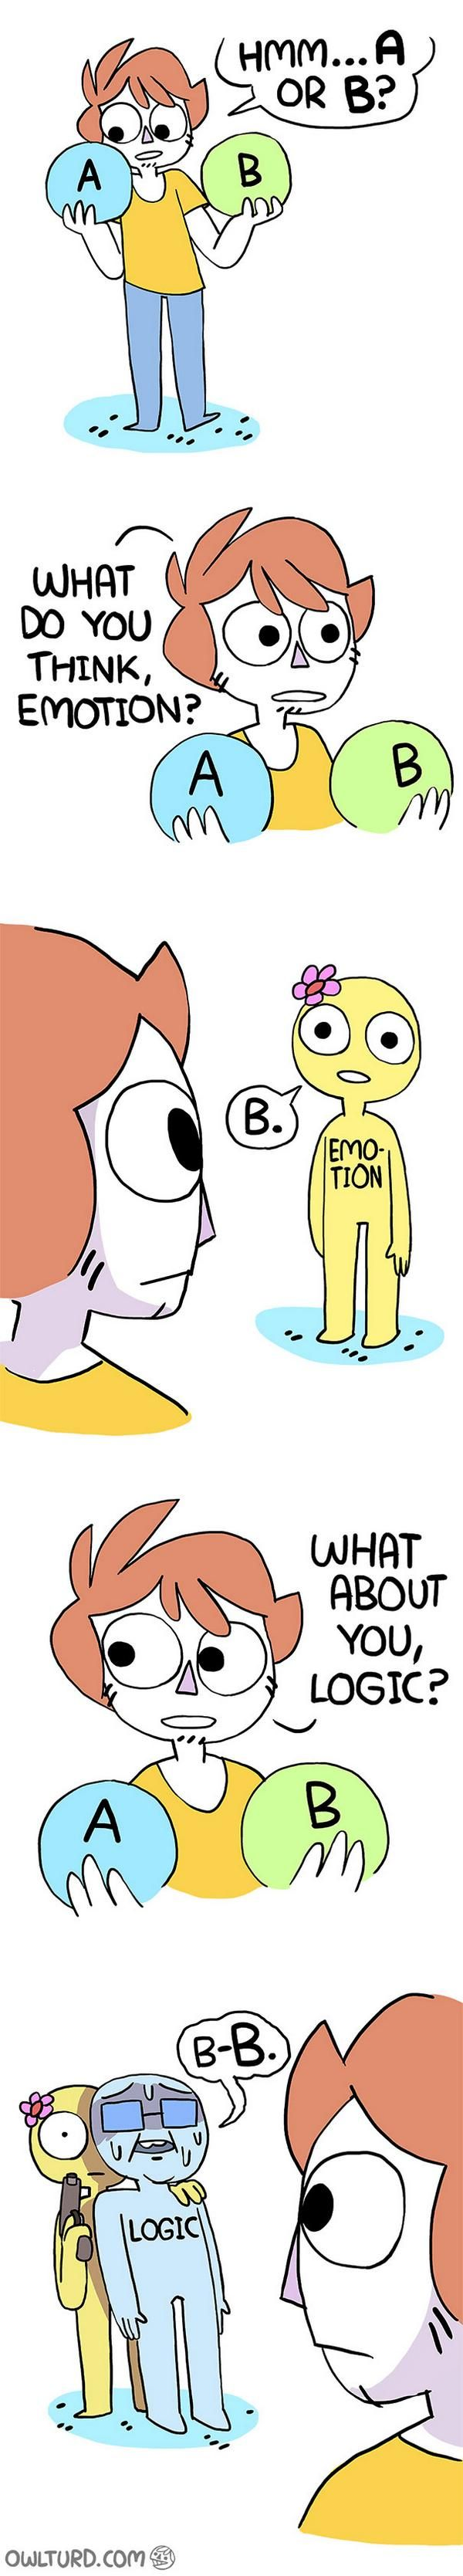 30 Joyfully and Wittily Comics About Our Life, http://coolvide.com/funny-comics-life-owl-turd-comix/ Check more at http://coolvide.com/funny-comics-life-owl-turd-comix/